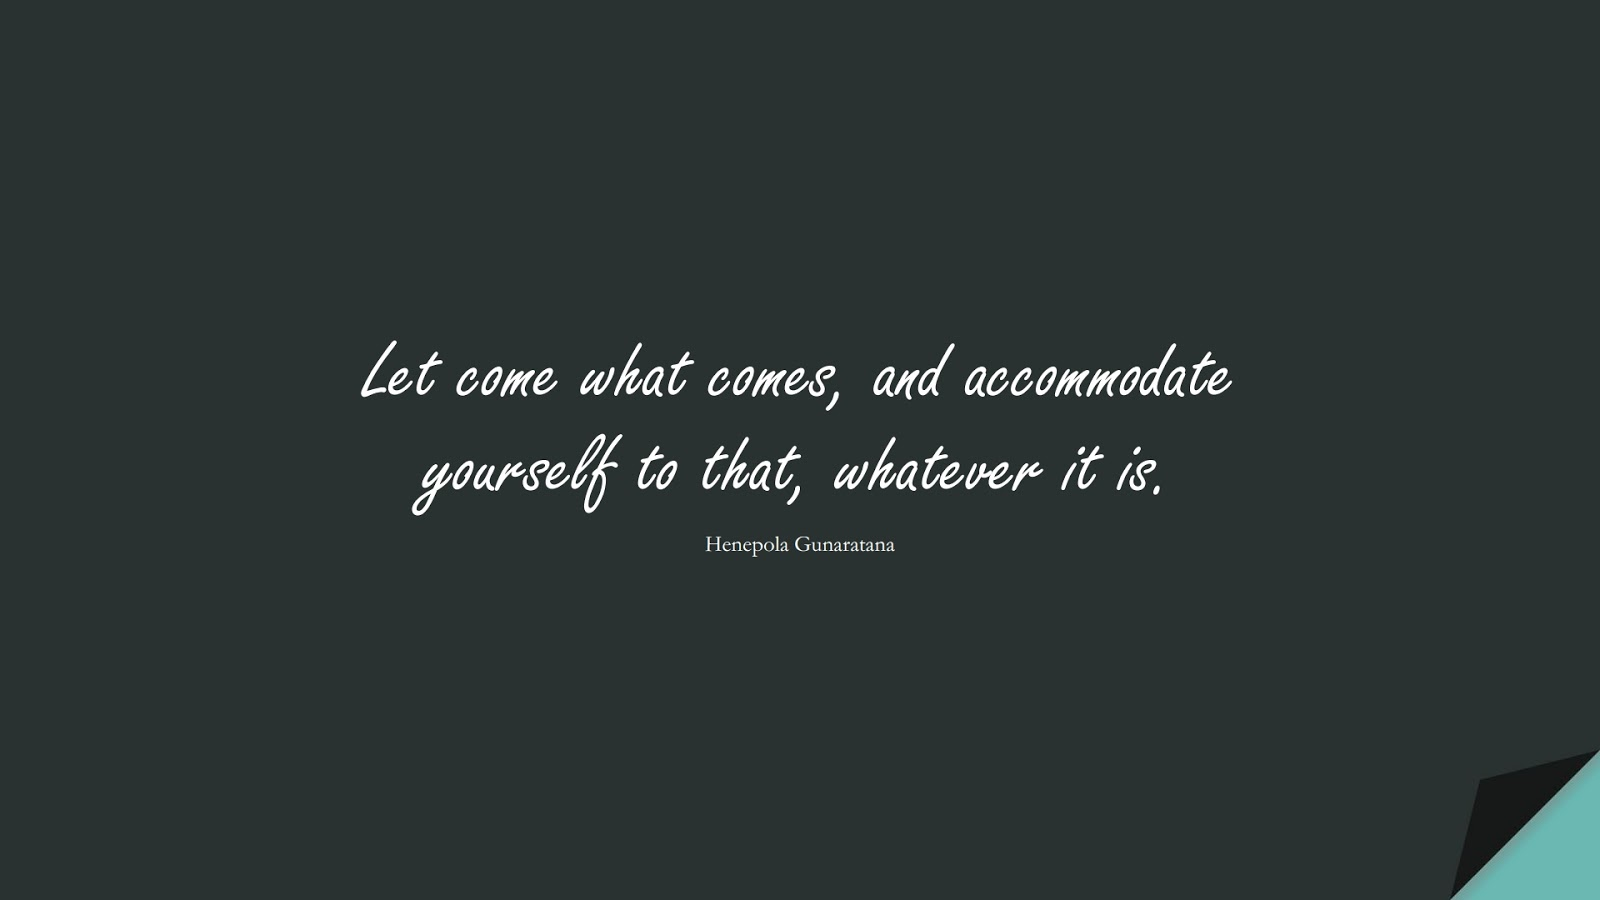 Let come what comes, and accommodate yourself to that, whatever it is. (Henepola Gunaratana);  #CalmQuotes